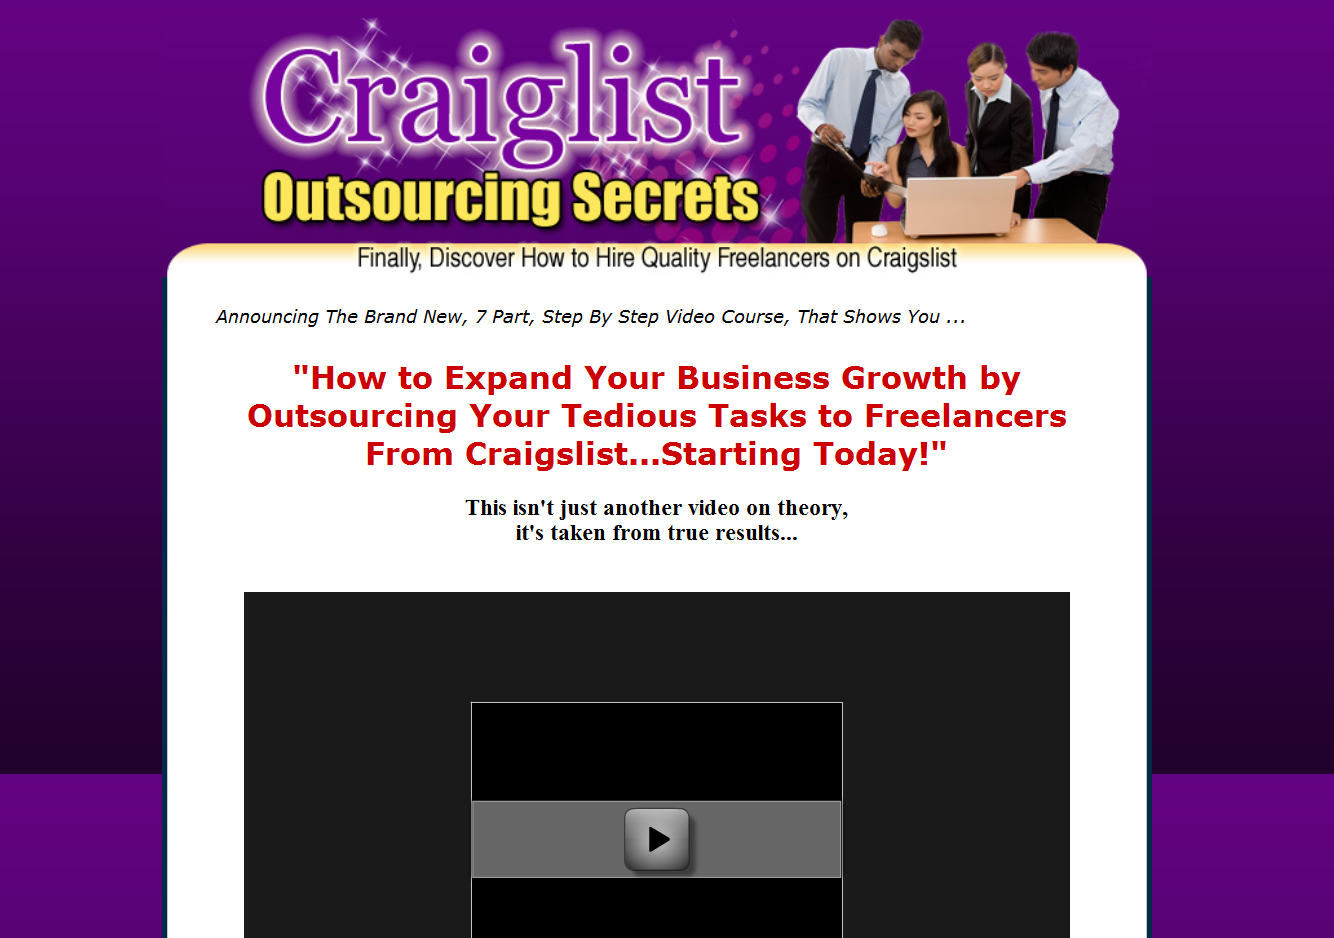 Craigslist Outsourcing Secrets